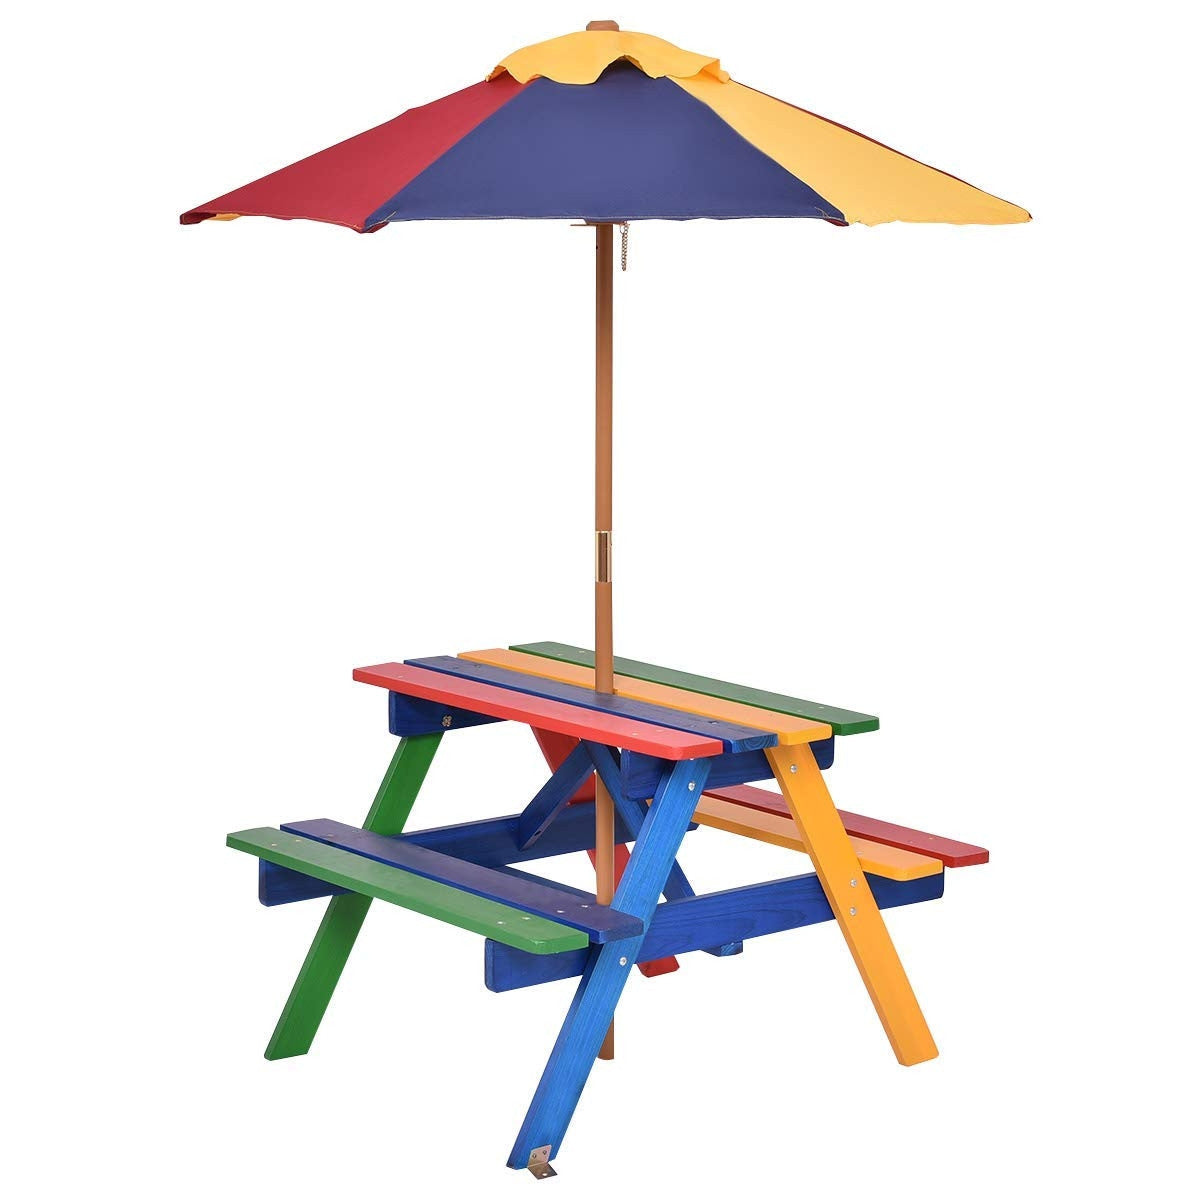 Sully & Rye Kids Picnic Table with Umbrella